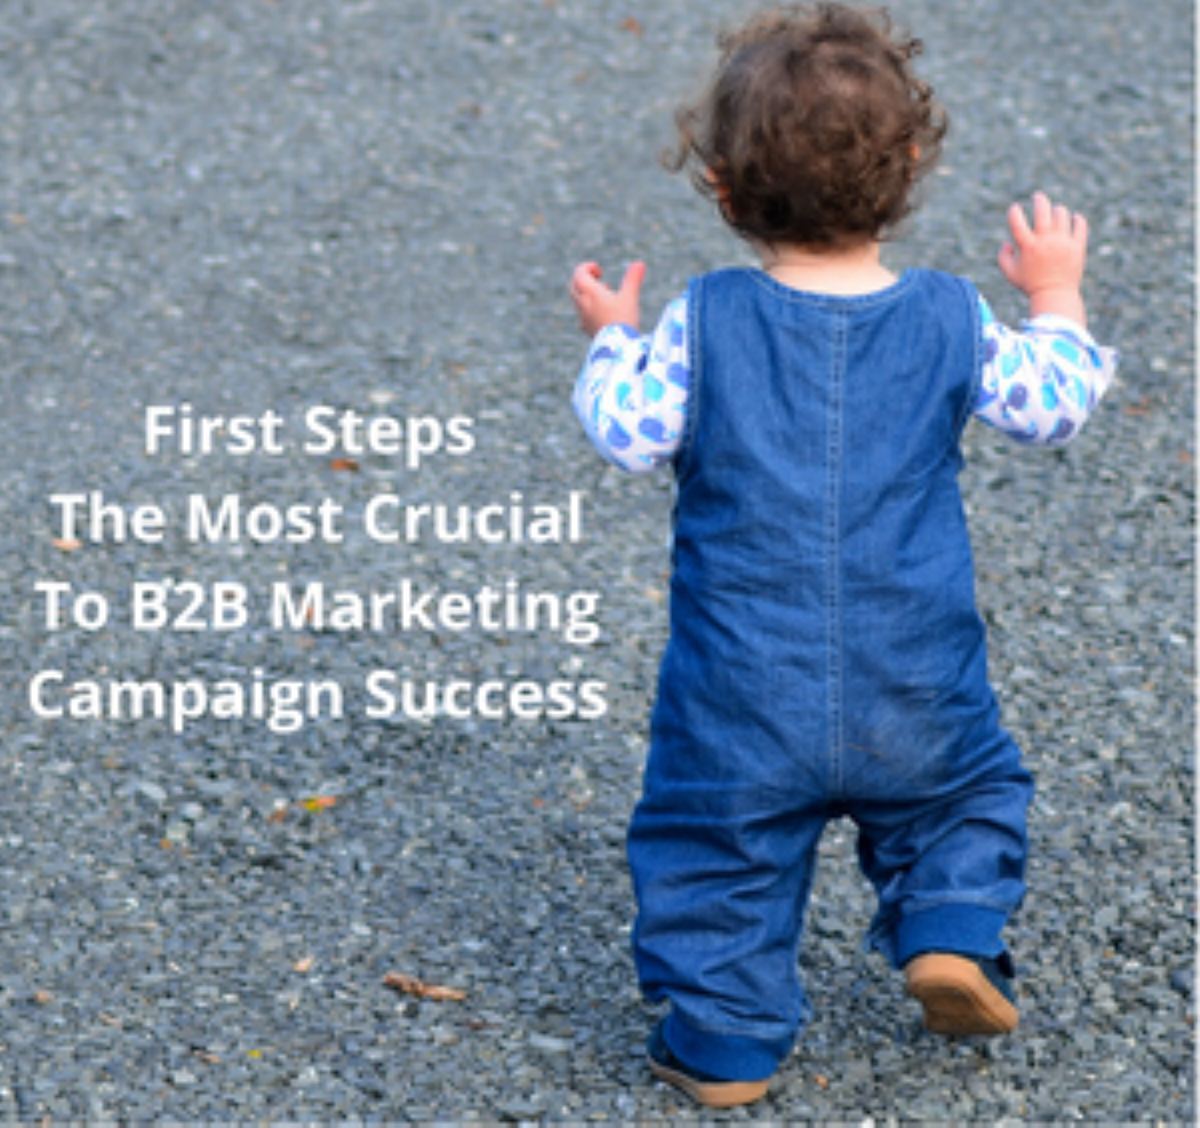 Why B2B Marketing Campaign First Steps Are the Most Crucial To Success